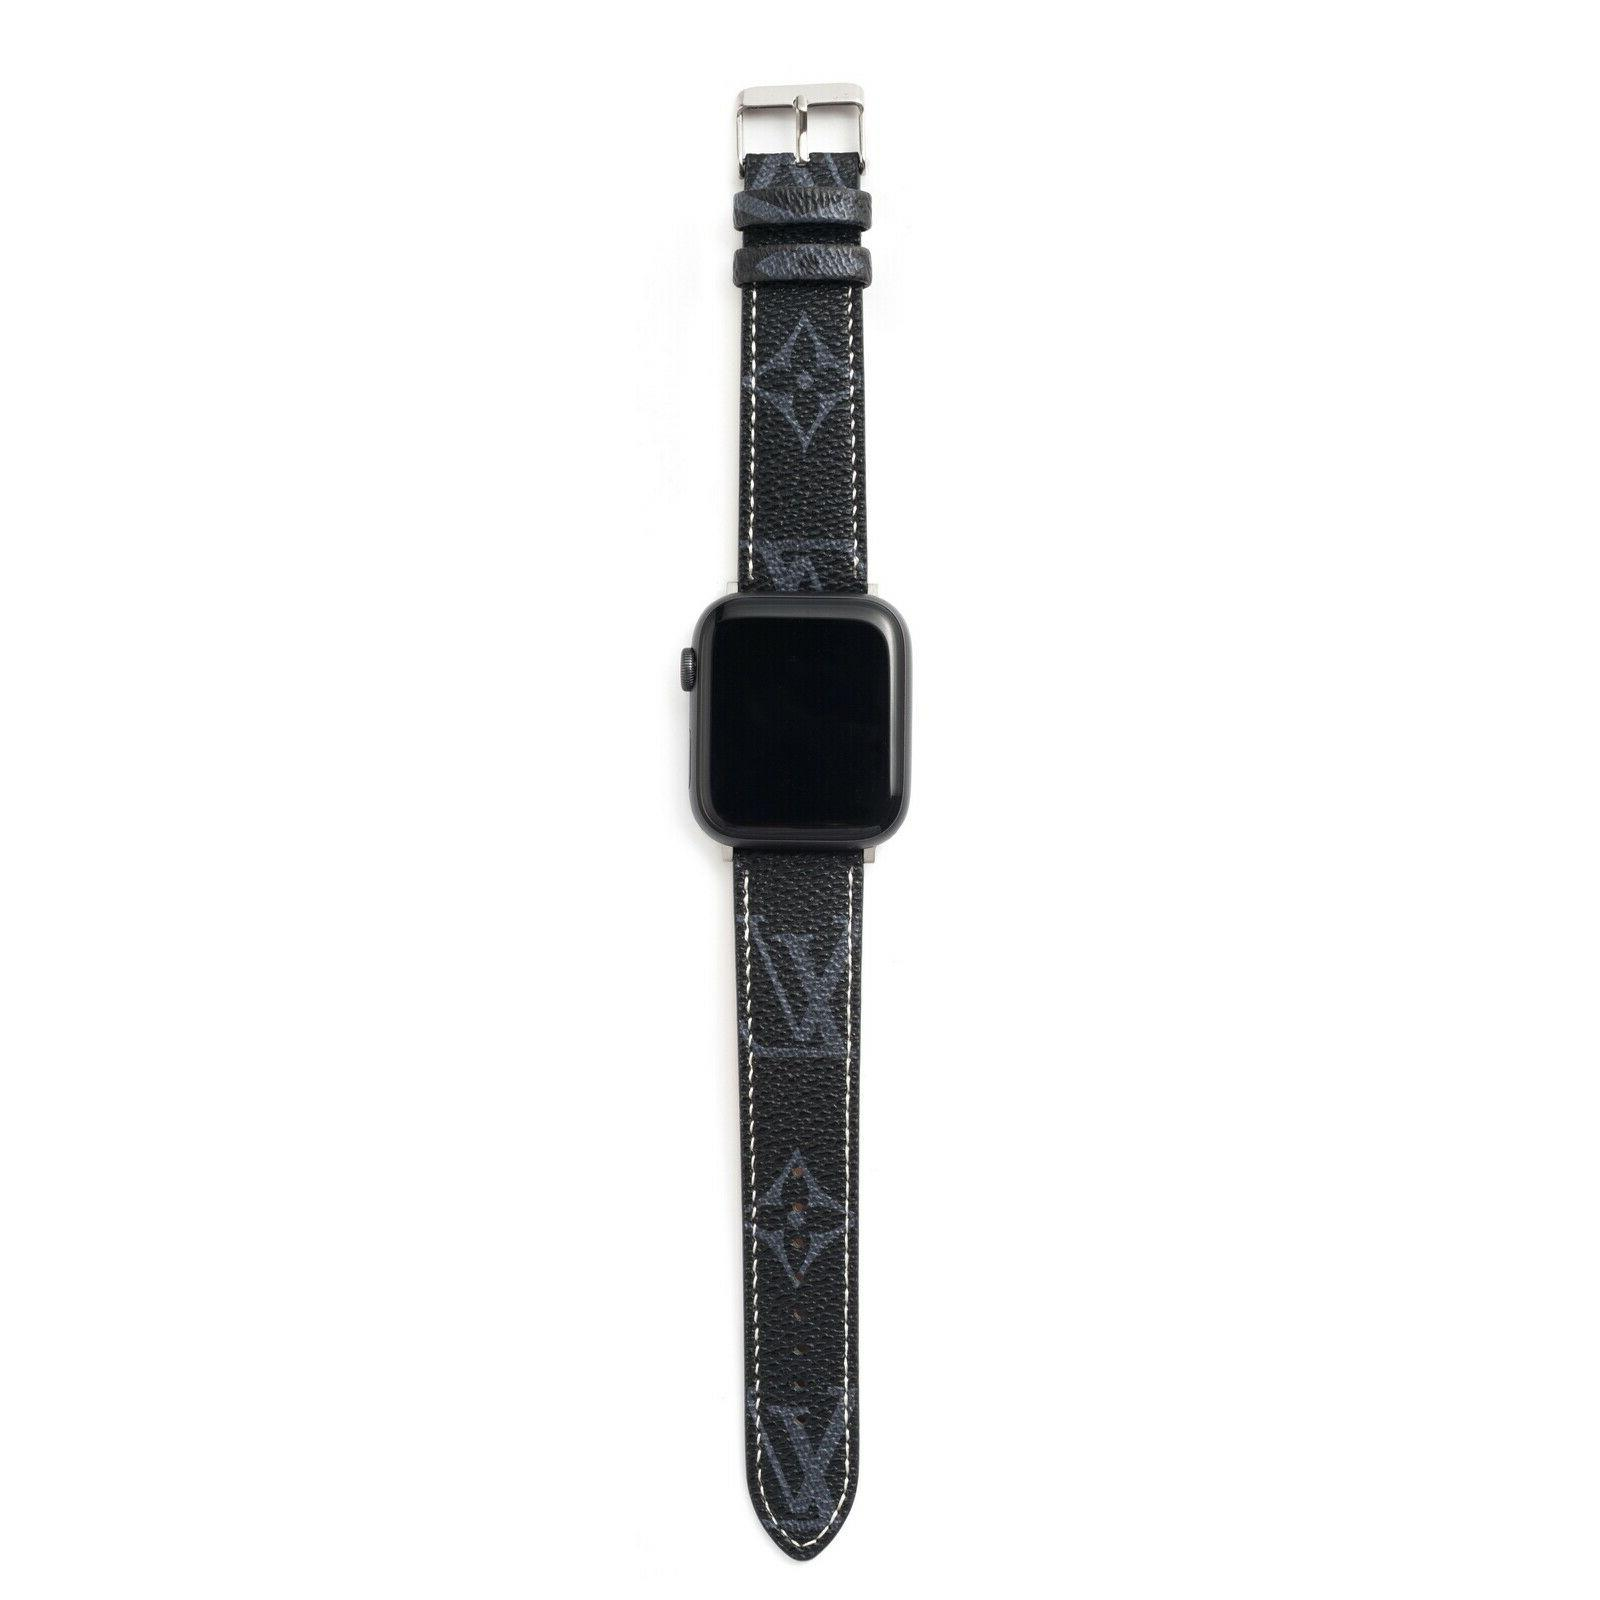 Luxury New Strap Watch Band 4 2